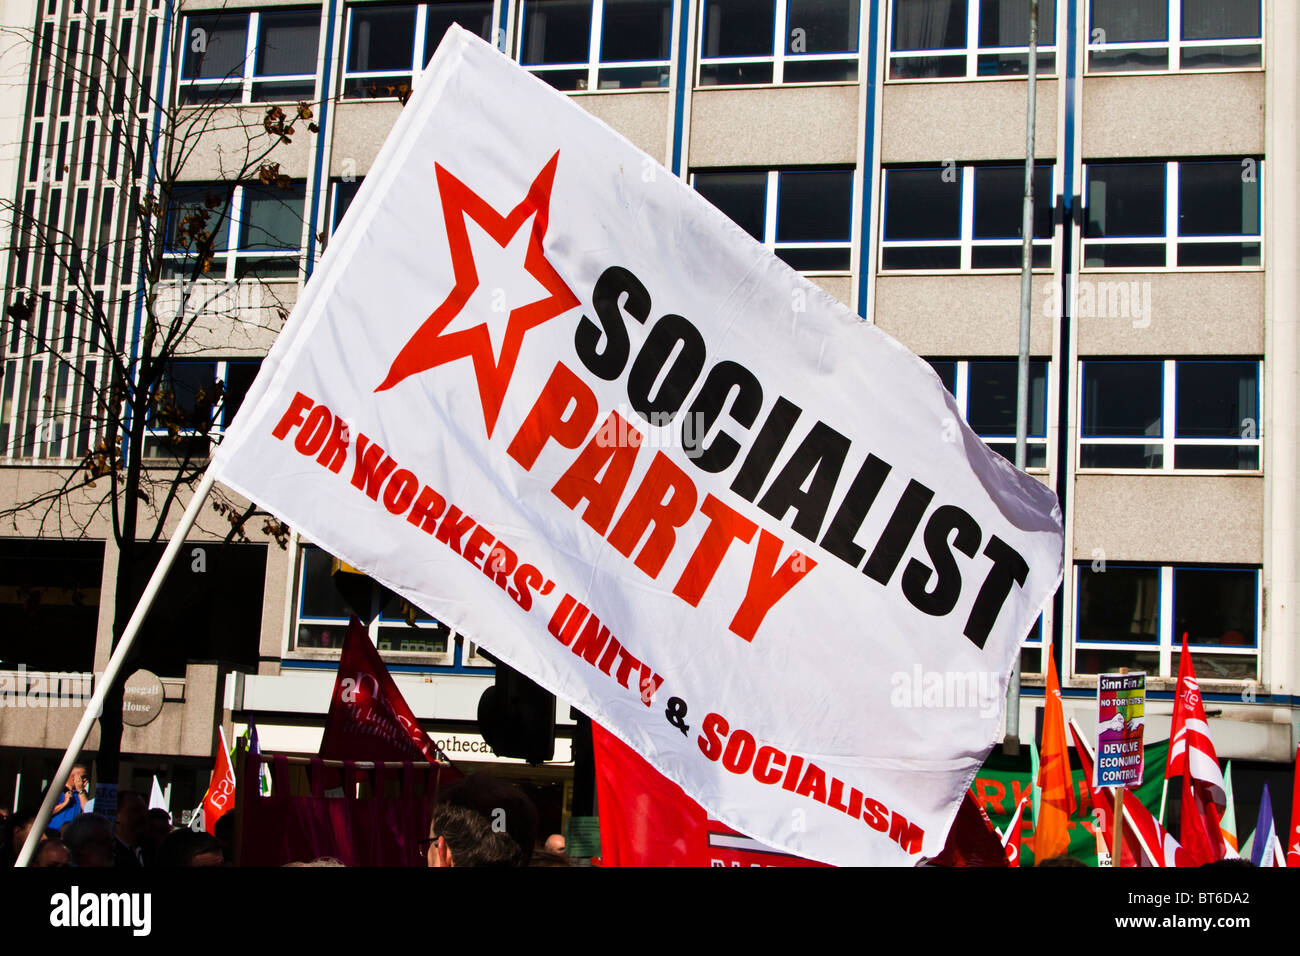 Socialist Party flag. Demonstration against government cuts, Belfast, 29 September 2010 - Stock Image